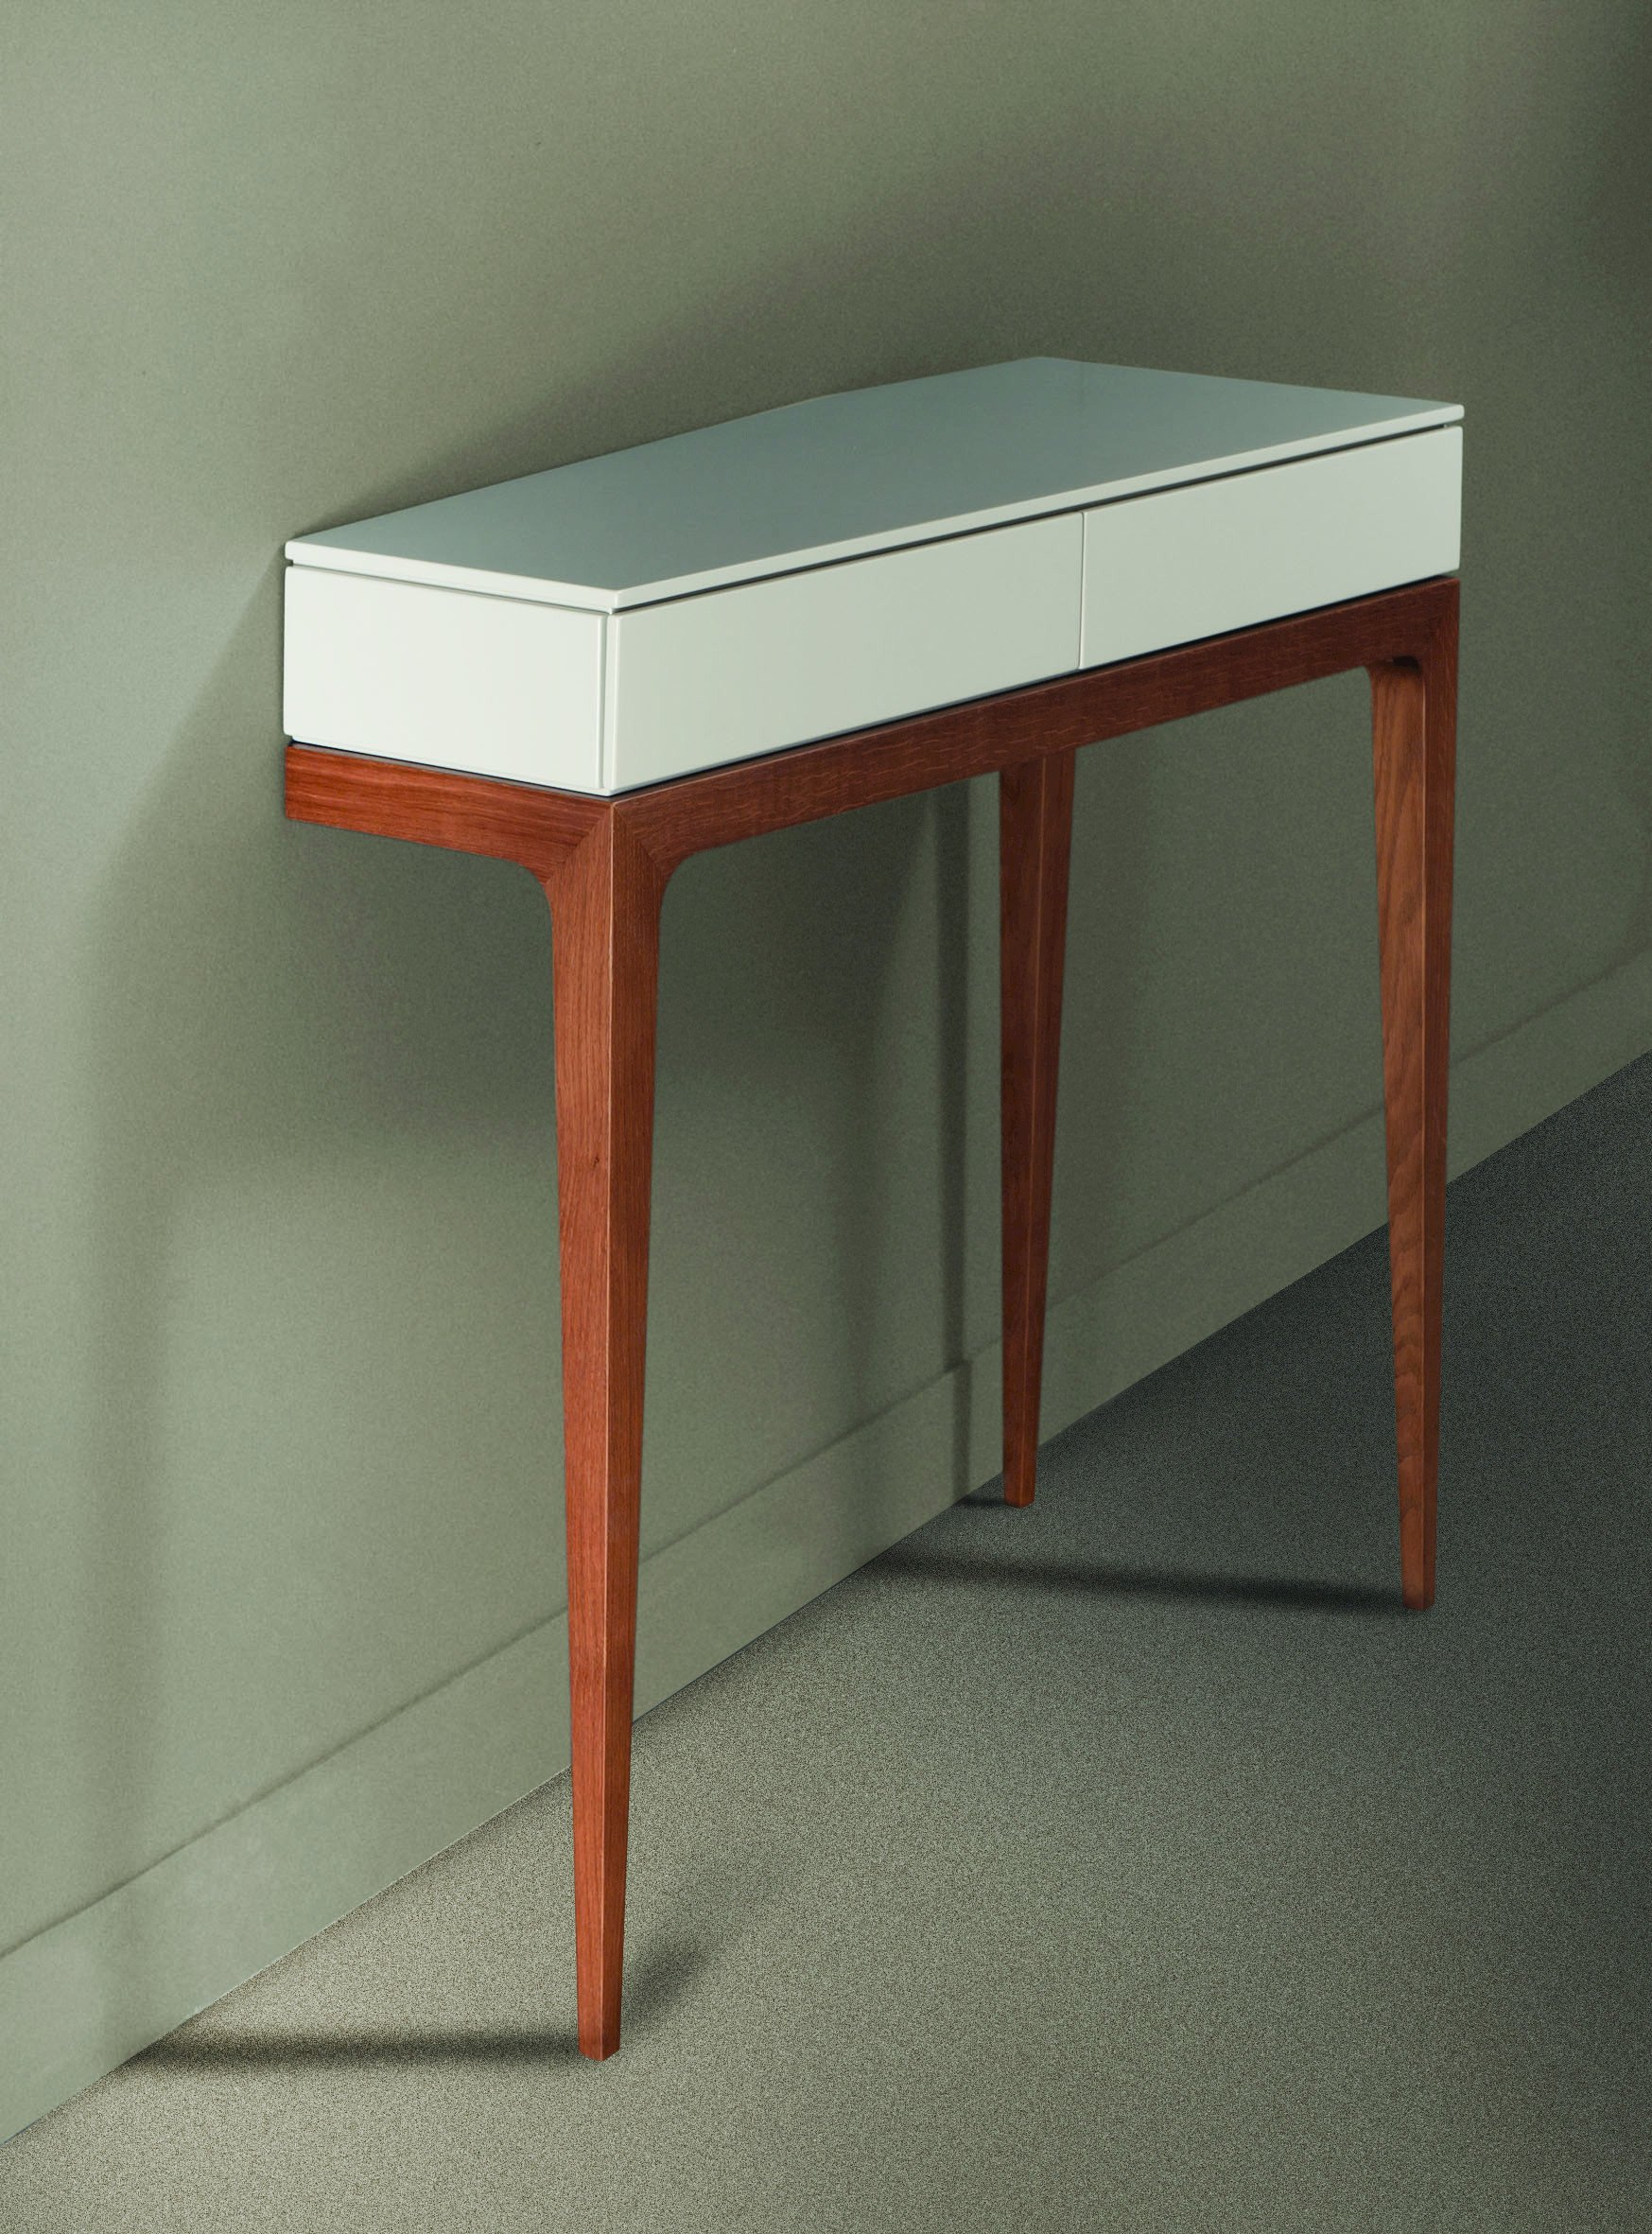 Table Console En Mdf Avec Tiroirs Moved Collection Les